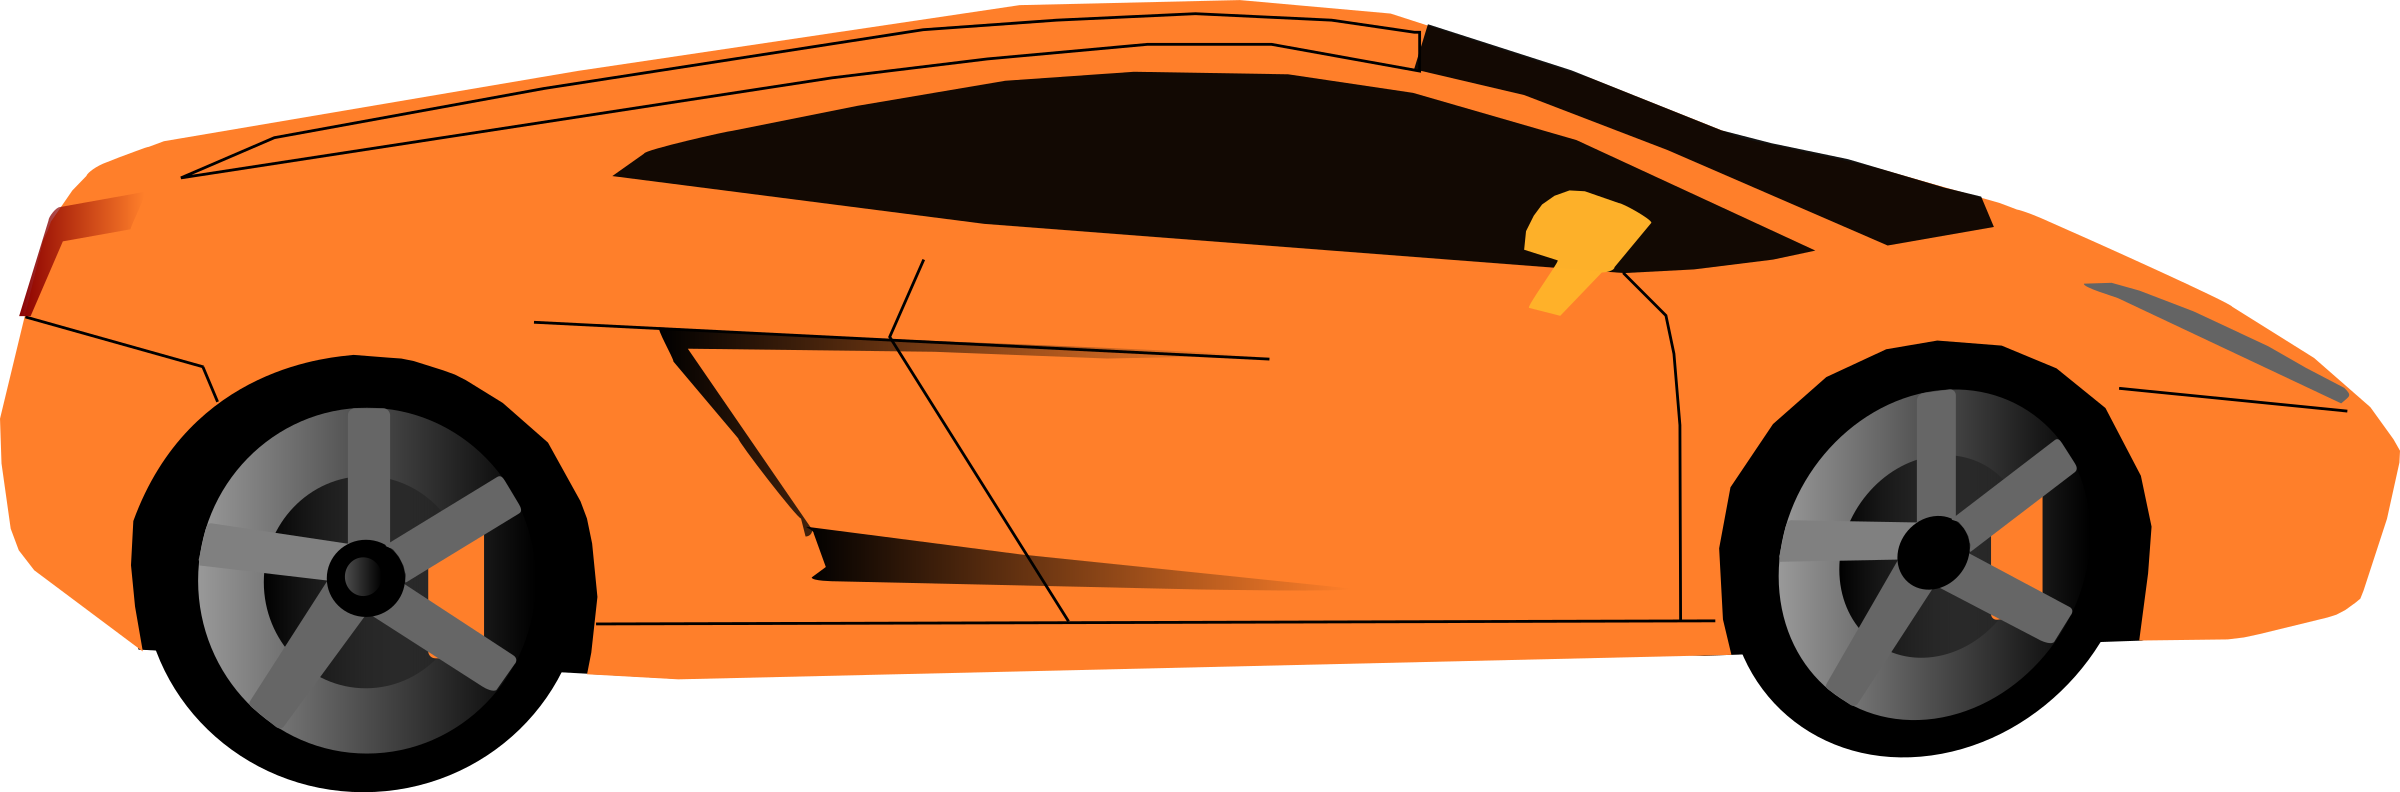 Car doors clipart svg stock Clipart - orange car svg stock